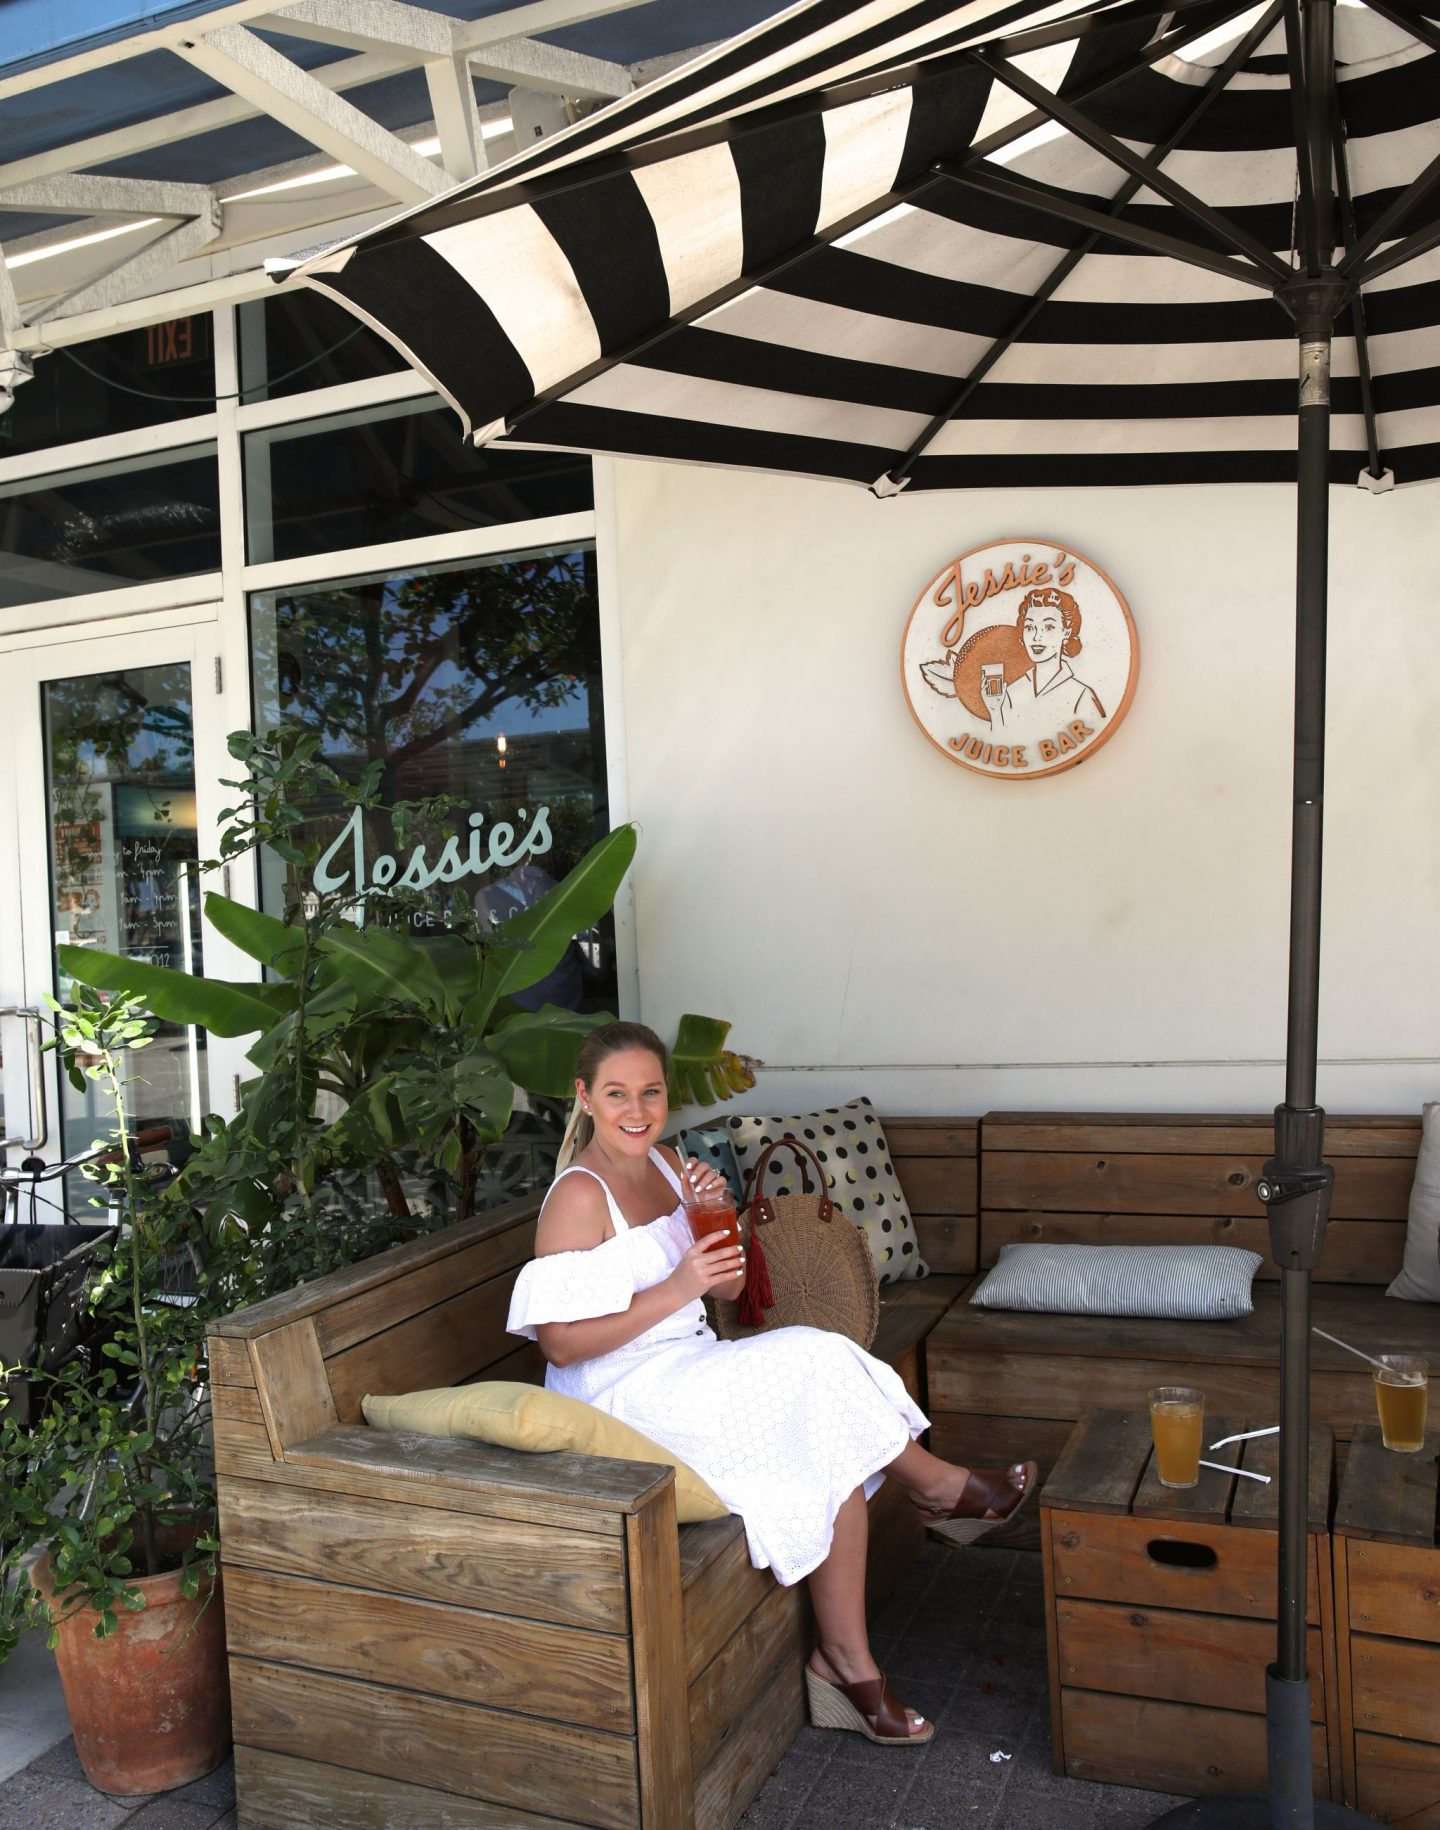 Jessie's Juice Bar, Grand Cayman, The Cayman Islands, Katie Heath, KALANCHOE